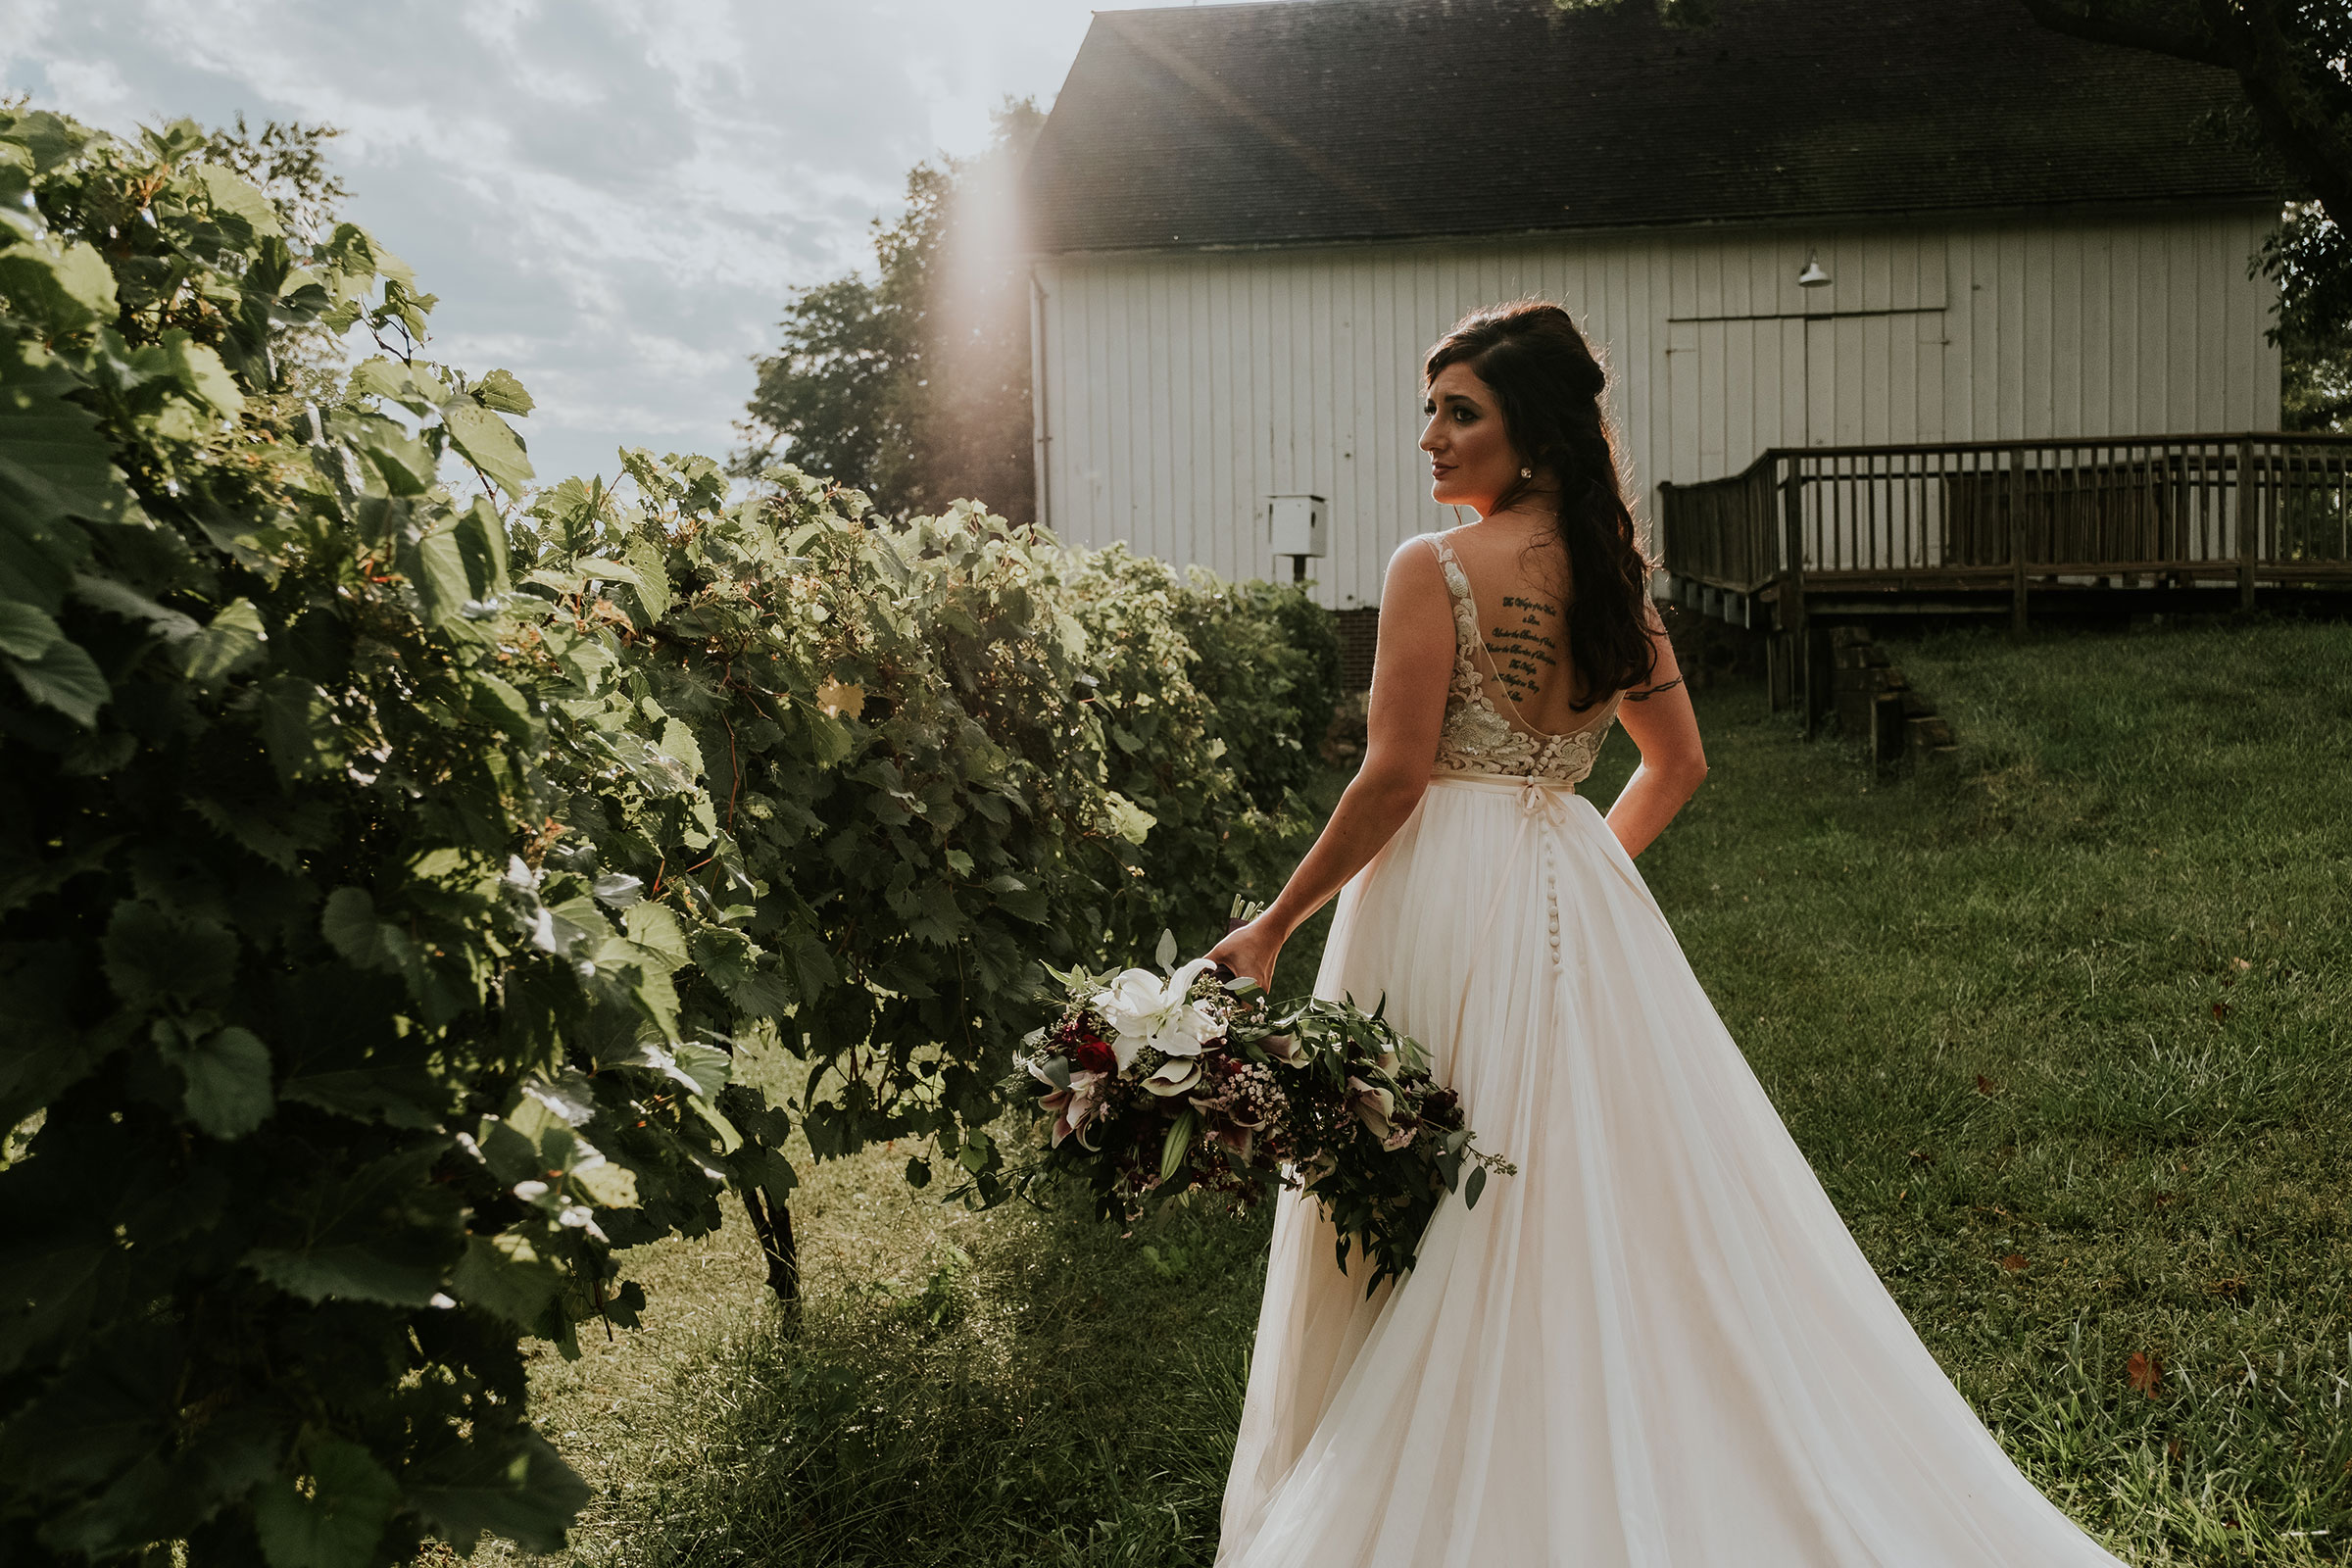 bride-standing-next-to-grape-vines-iowa-state-fairgrounds-desmoines-iowa-raelyn-ramey-photography.jpg